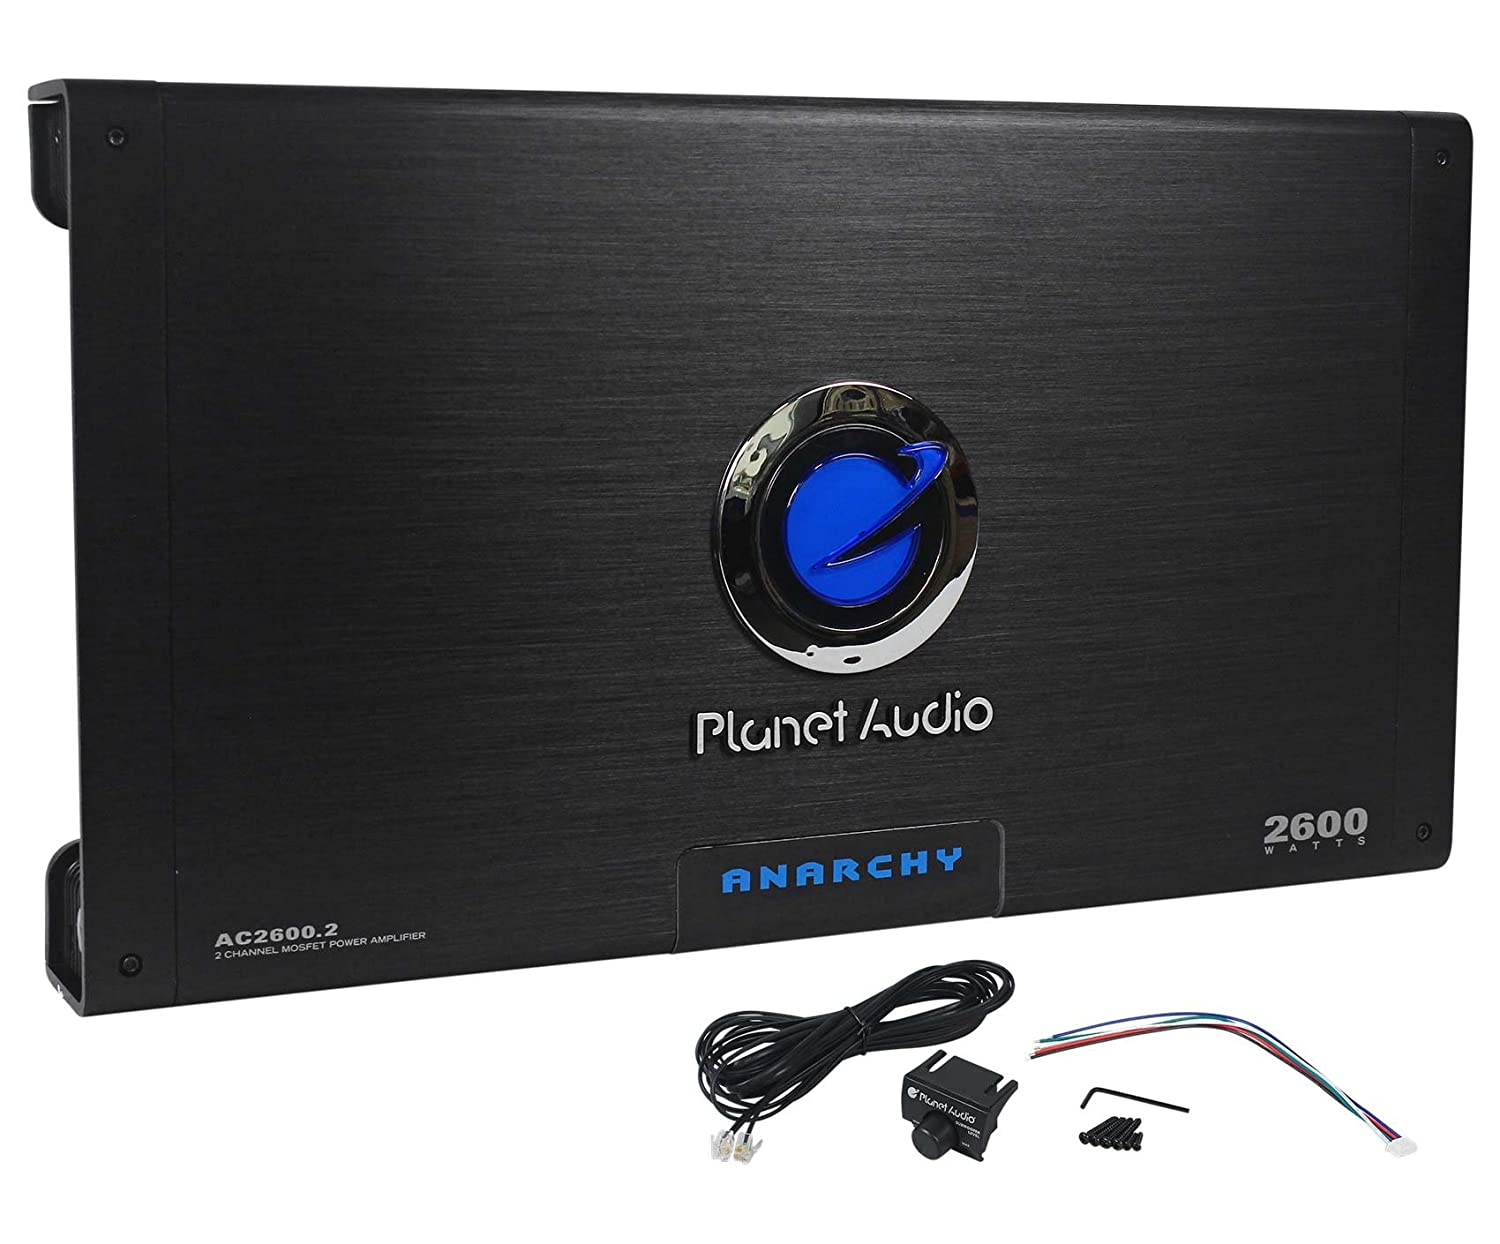 715pwSEBkwL._SL1500_ amazon com planet audio ac2600 2 2600 watt 2 channel car power planet audio ac12d wiring diagram at fashall.co